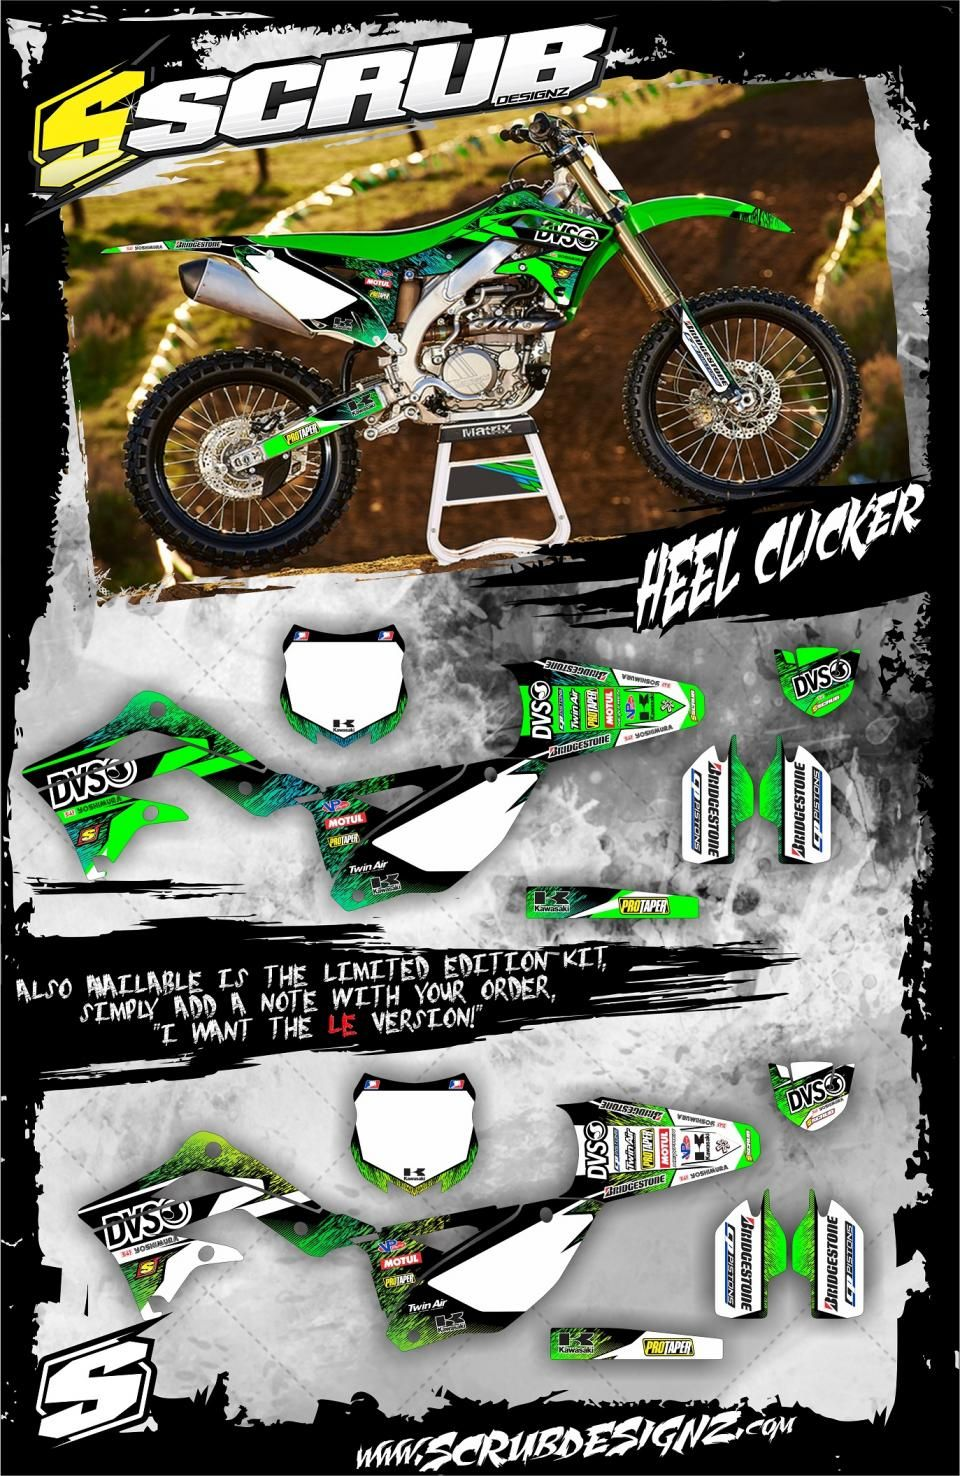 Kawasaki Motocross Graphic Sticker Decal Kit Mx Graphics Kx250 Wiring Harness For Kx450f